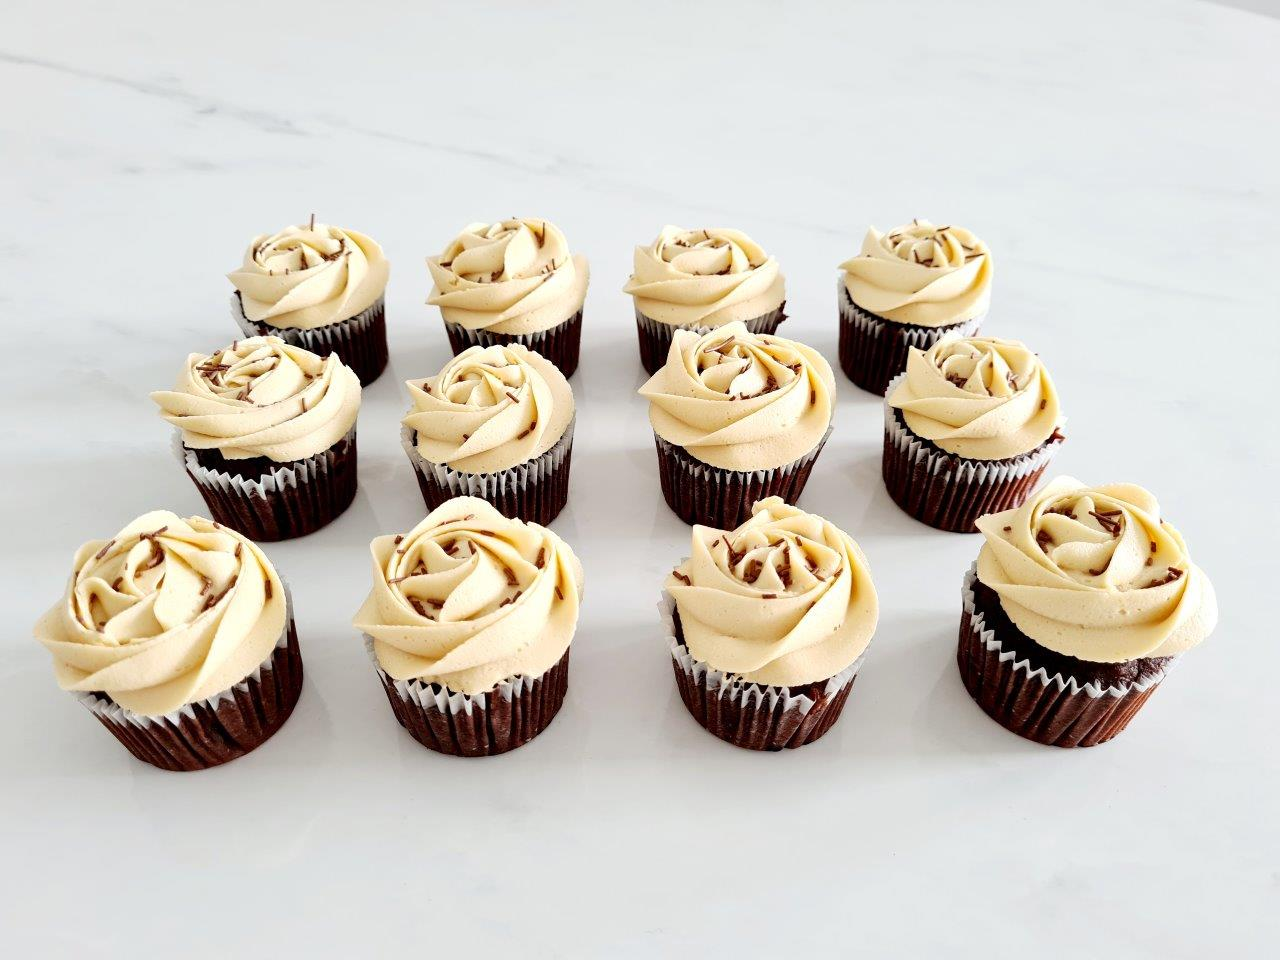 Coffee buttercream topped with chocolate sprinkles on vanilla or chocolate cupcakes